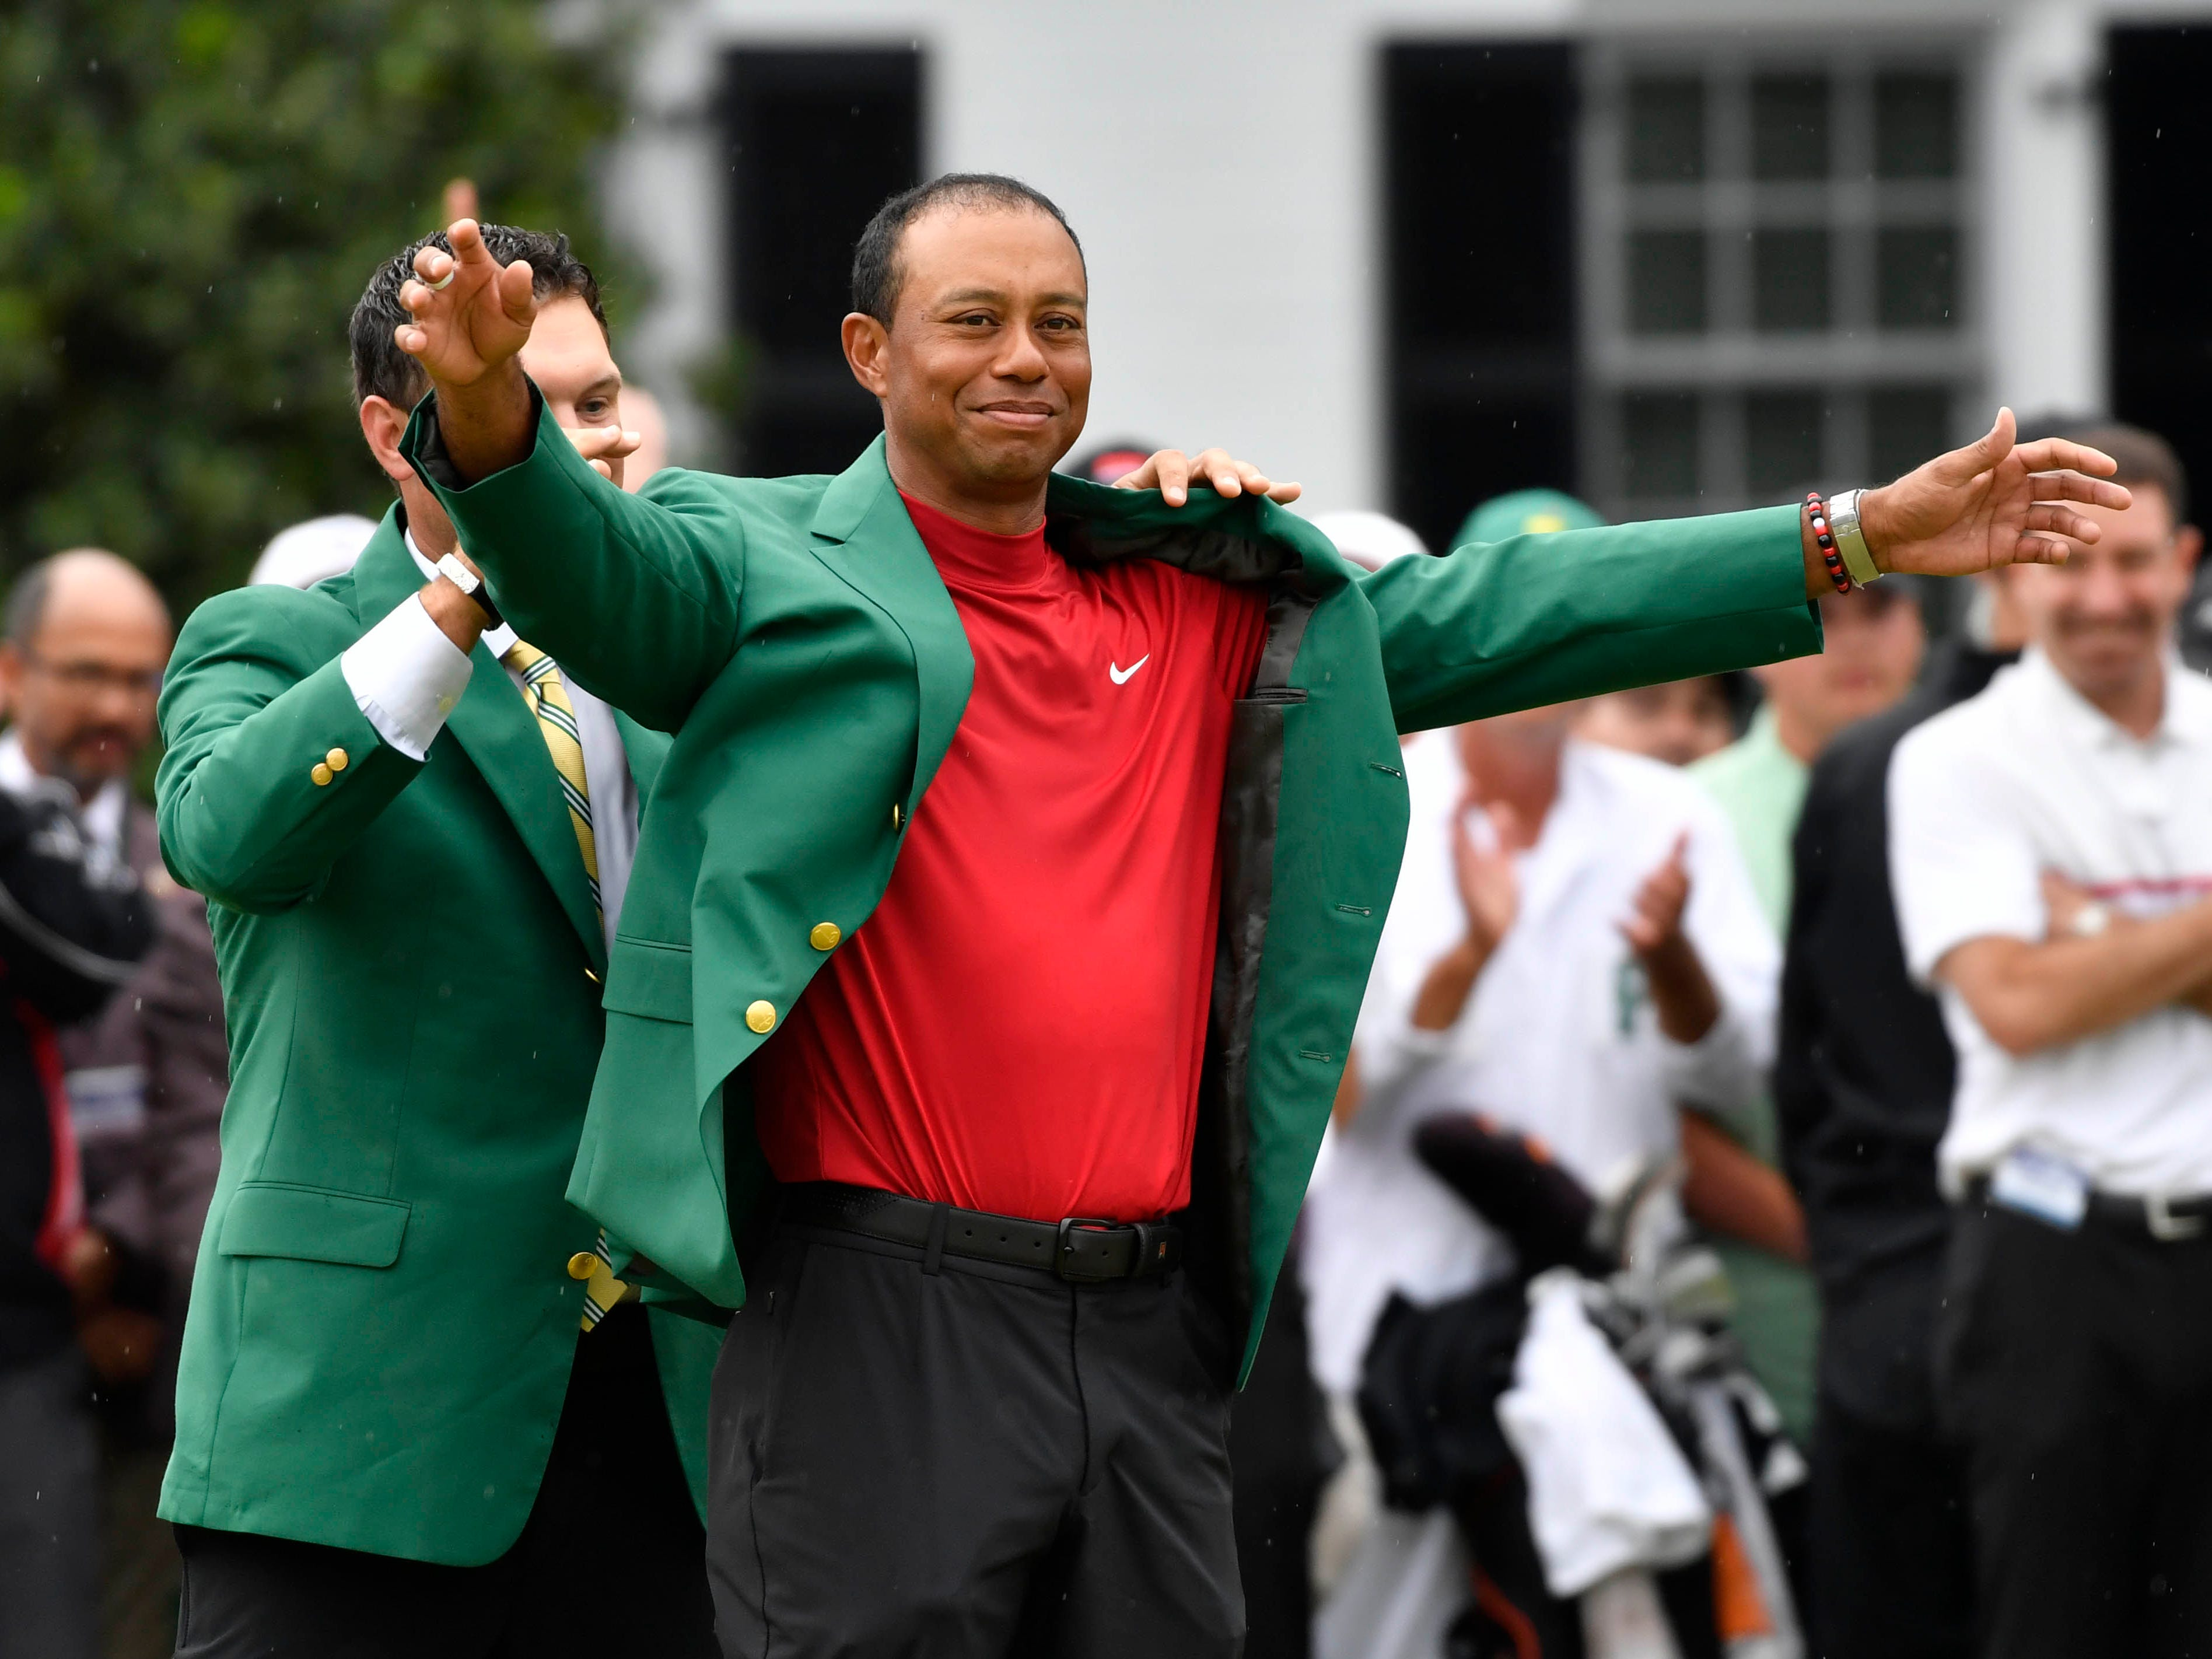 2018 winner Patrick Reed places the green jacket on 2019 winner Tiger Woods after the final round of The Masters golf tournament at Augusta National Golf Club.